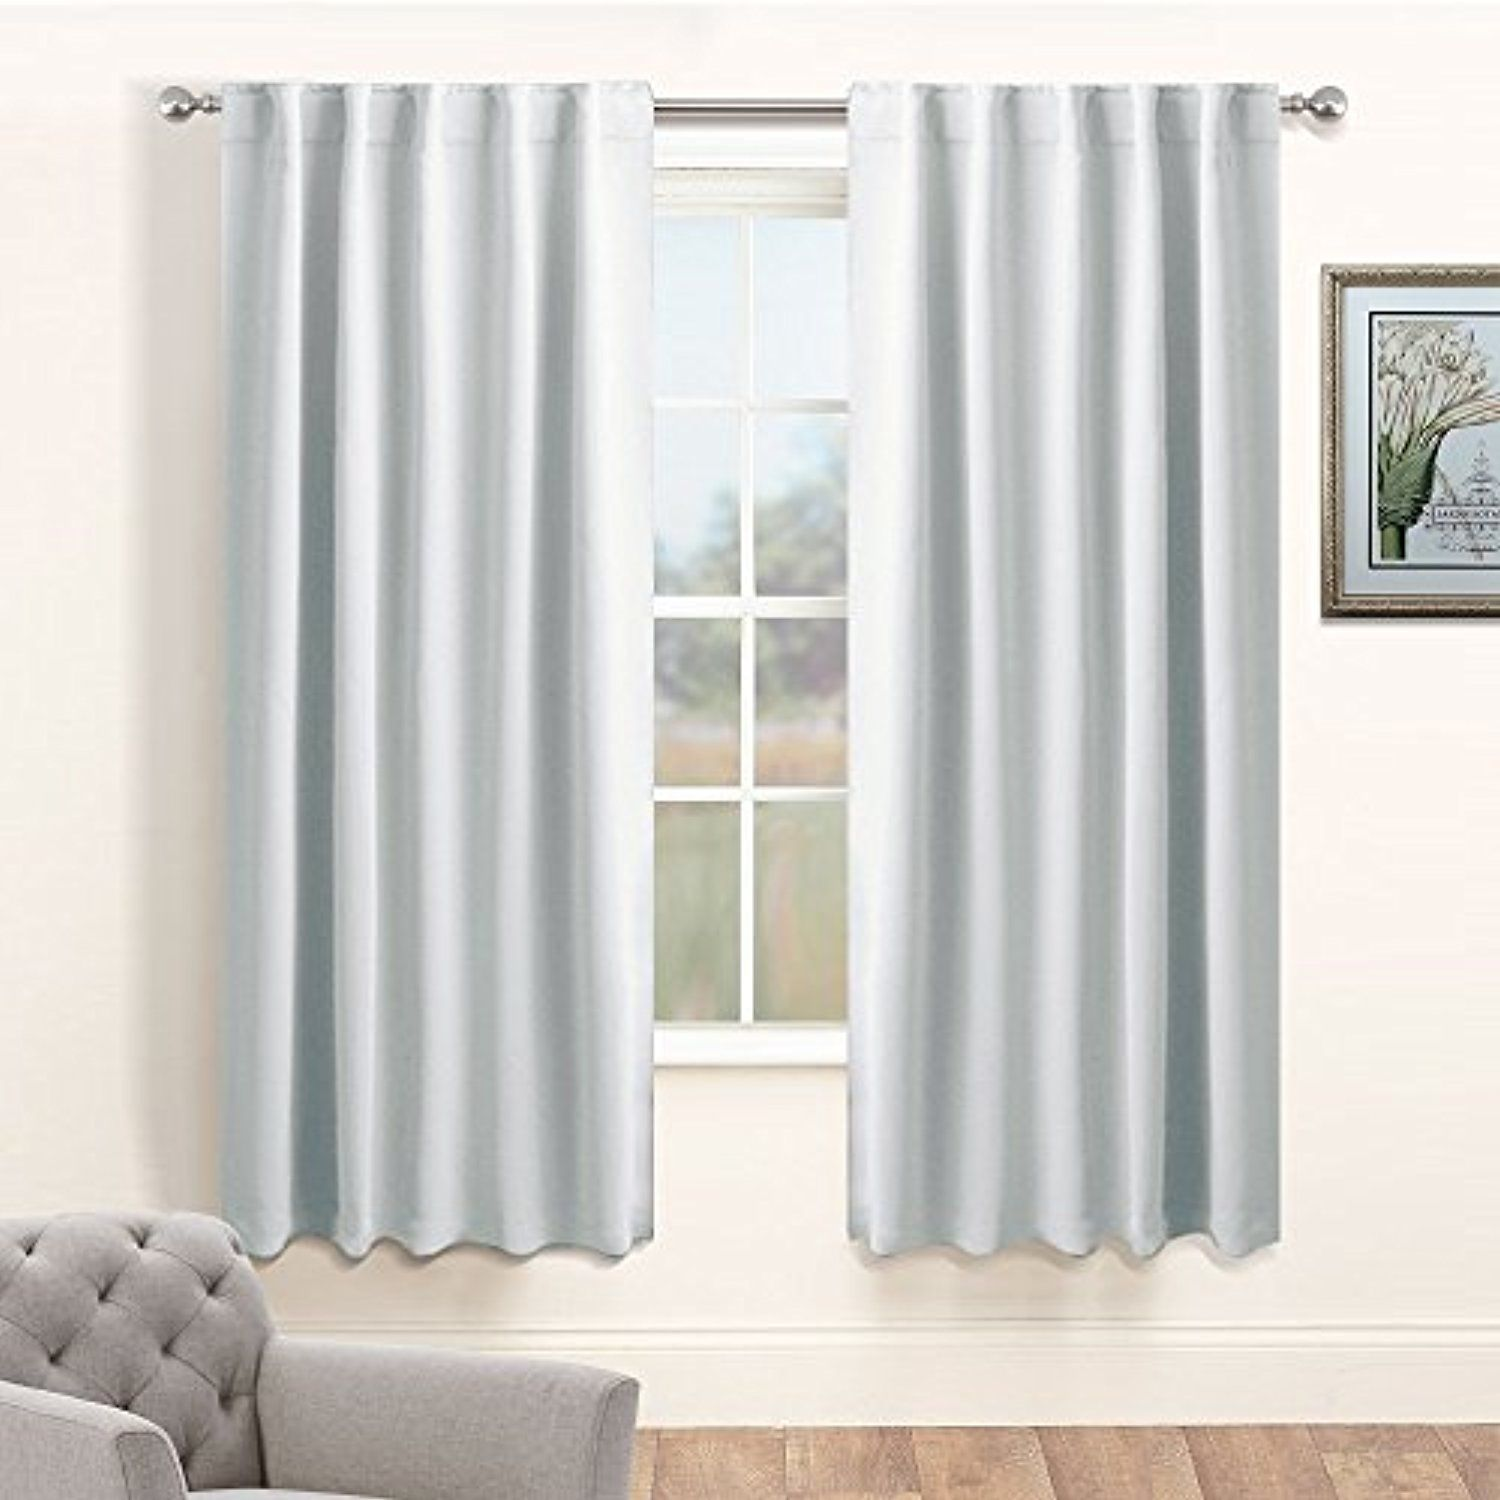 Silver White Bedroom Curtain Panels - PONY DANCE Home Decor ...